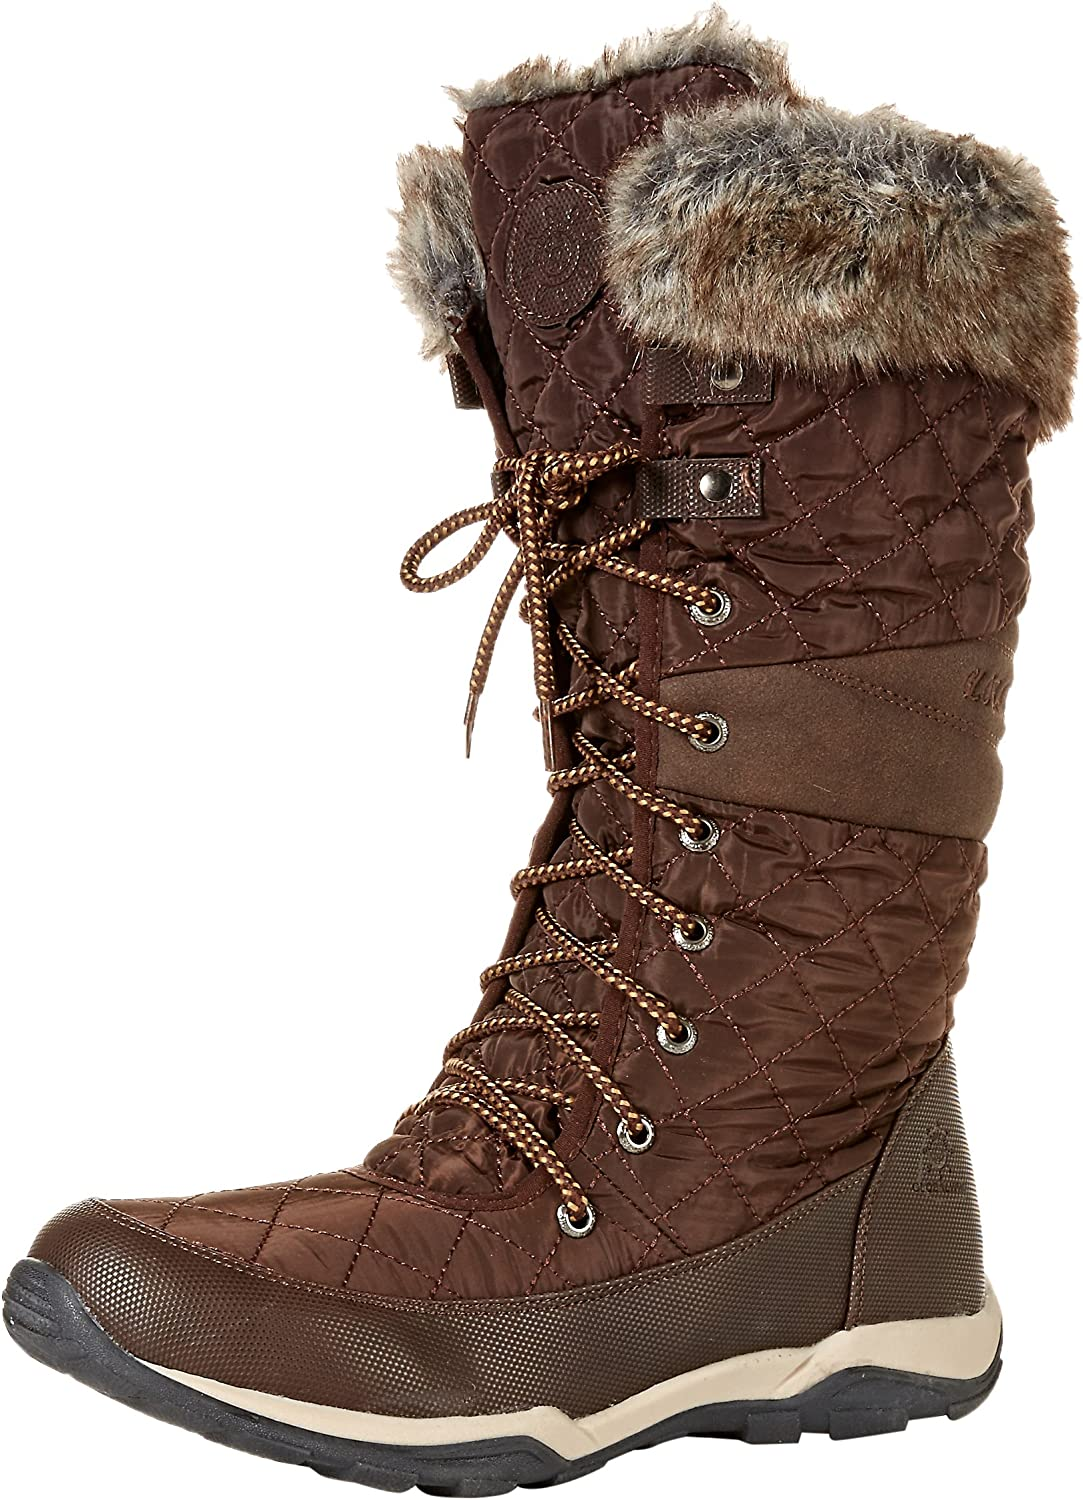 1fc05a87281 GLOBALWIN Women's YY03 Brown Fashion Snow Boots 9.5M owjxc48331684 ...